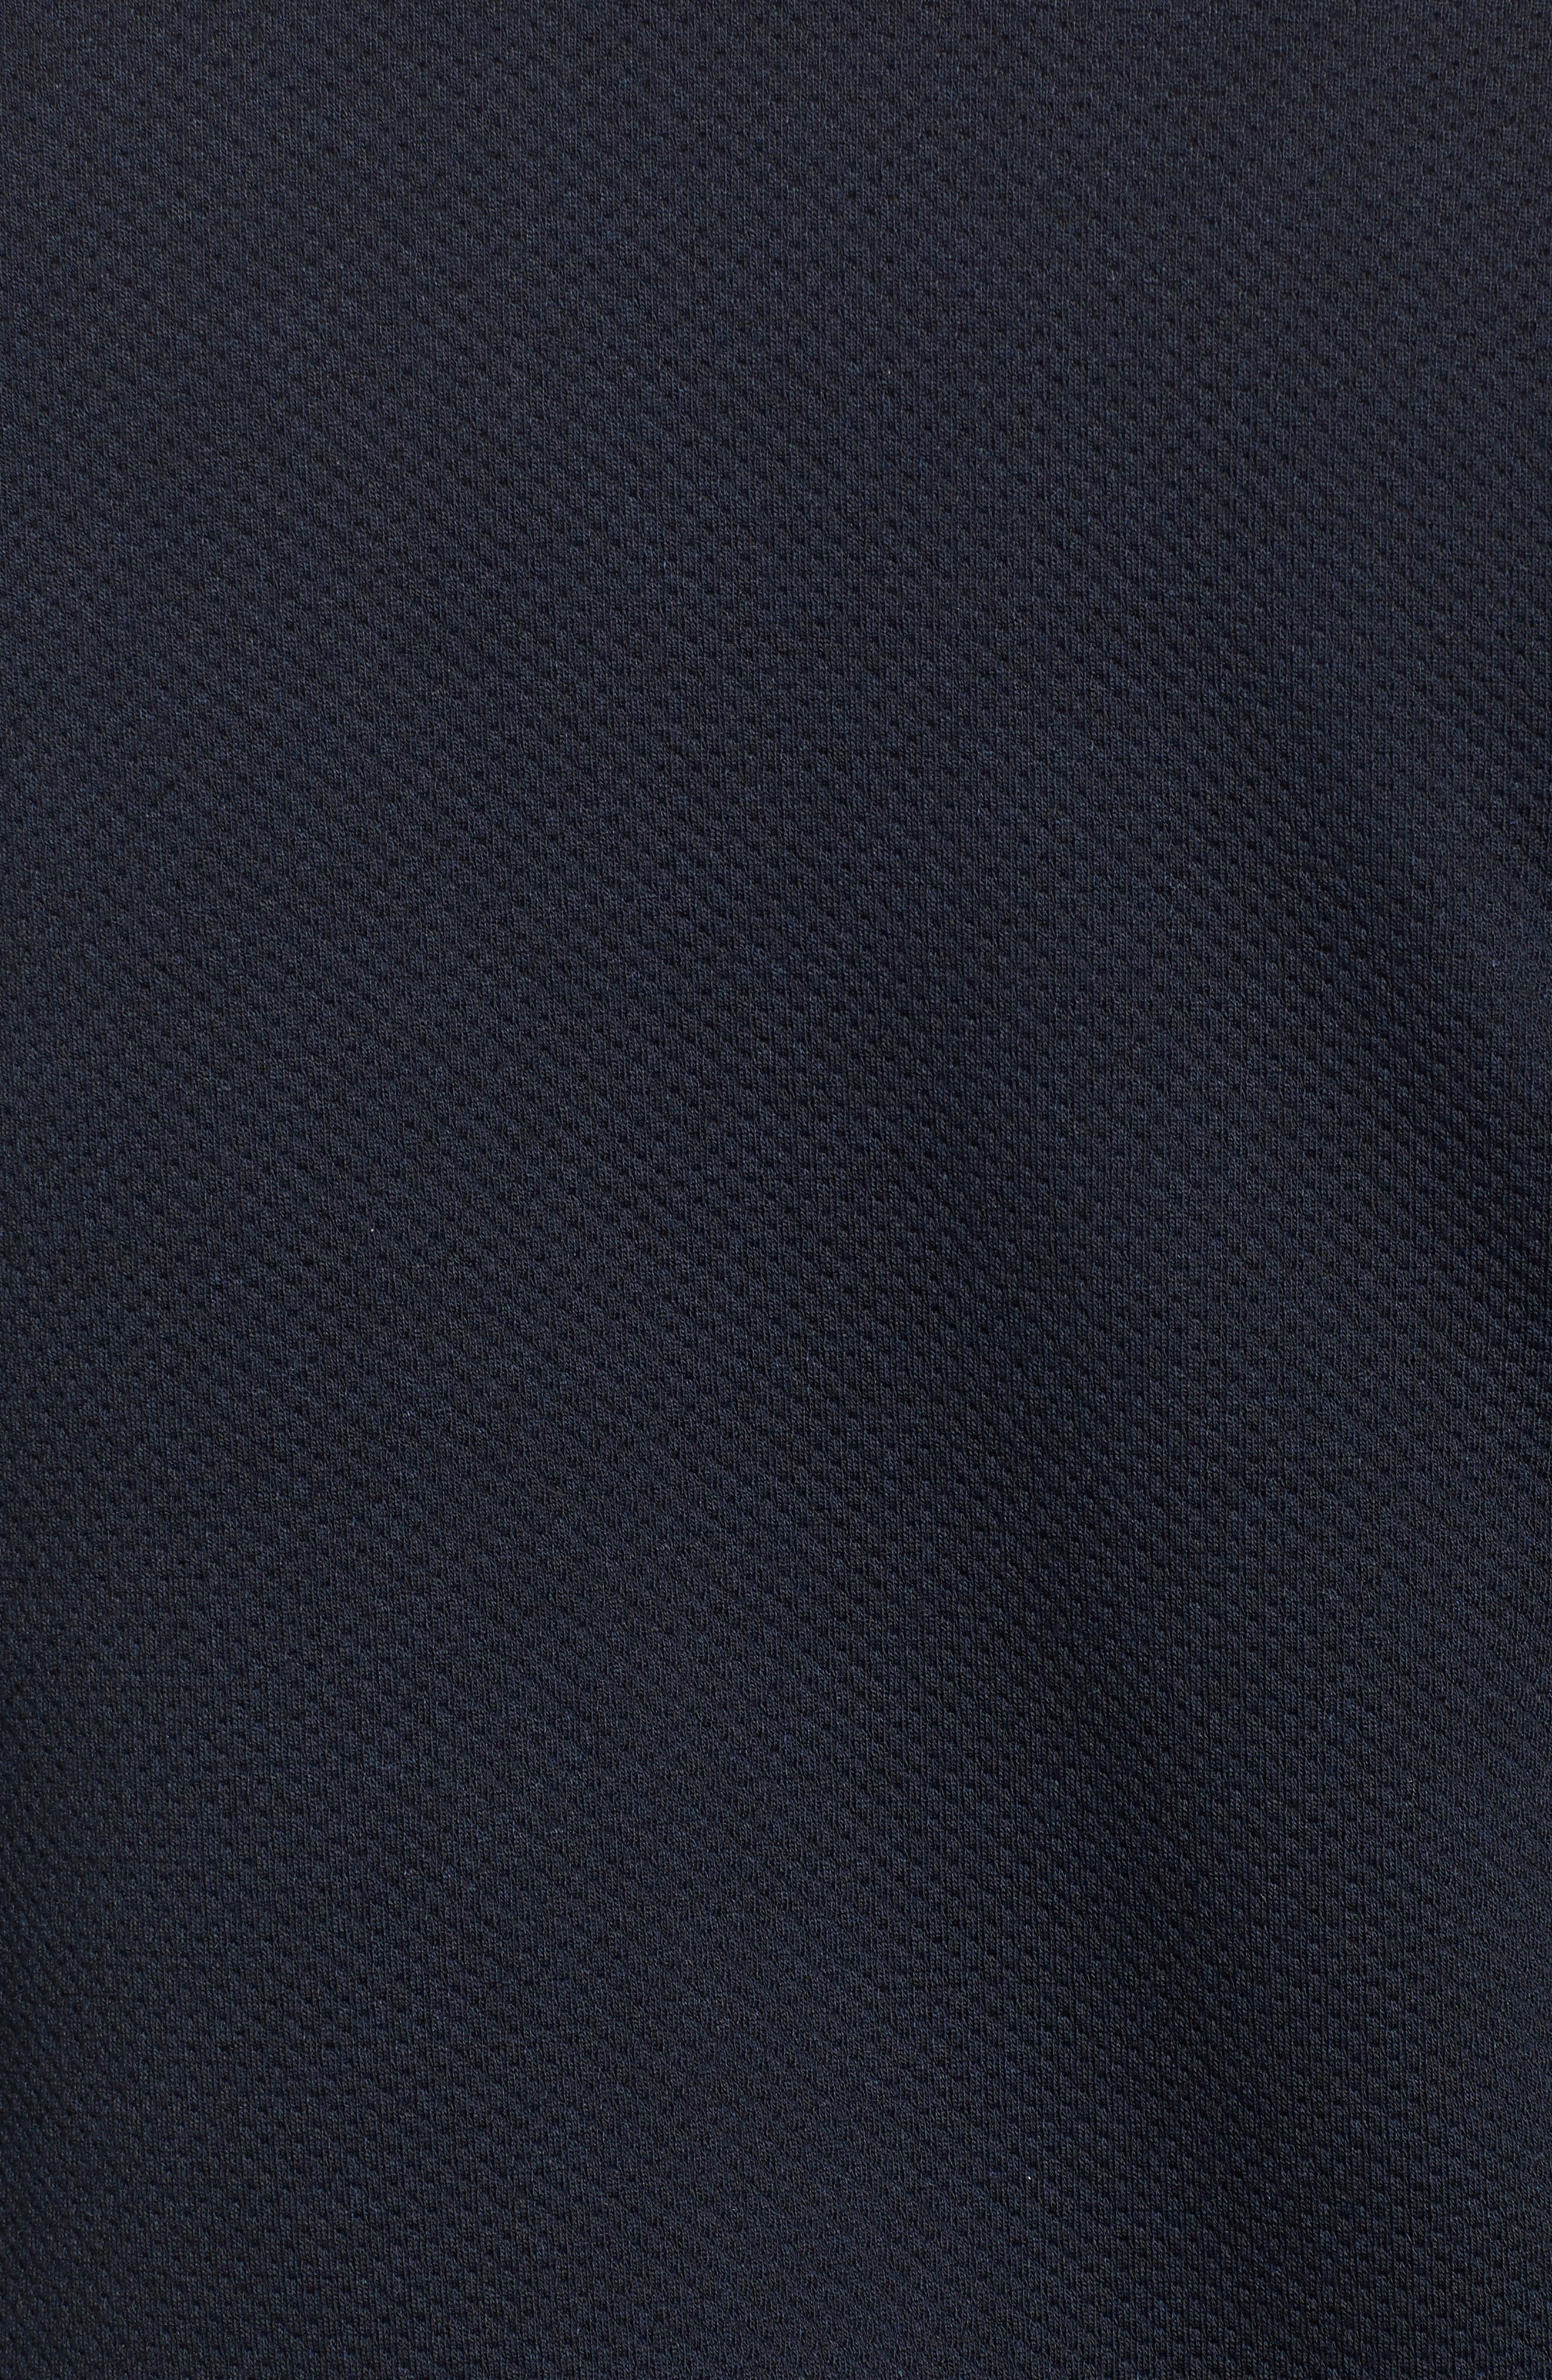 Whatts Trim Fit Textured Bomber Jacket,                             Alternate thumbnail 5, color,                             Navy